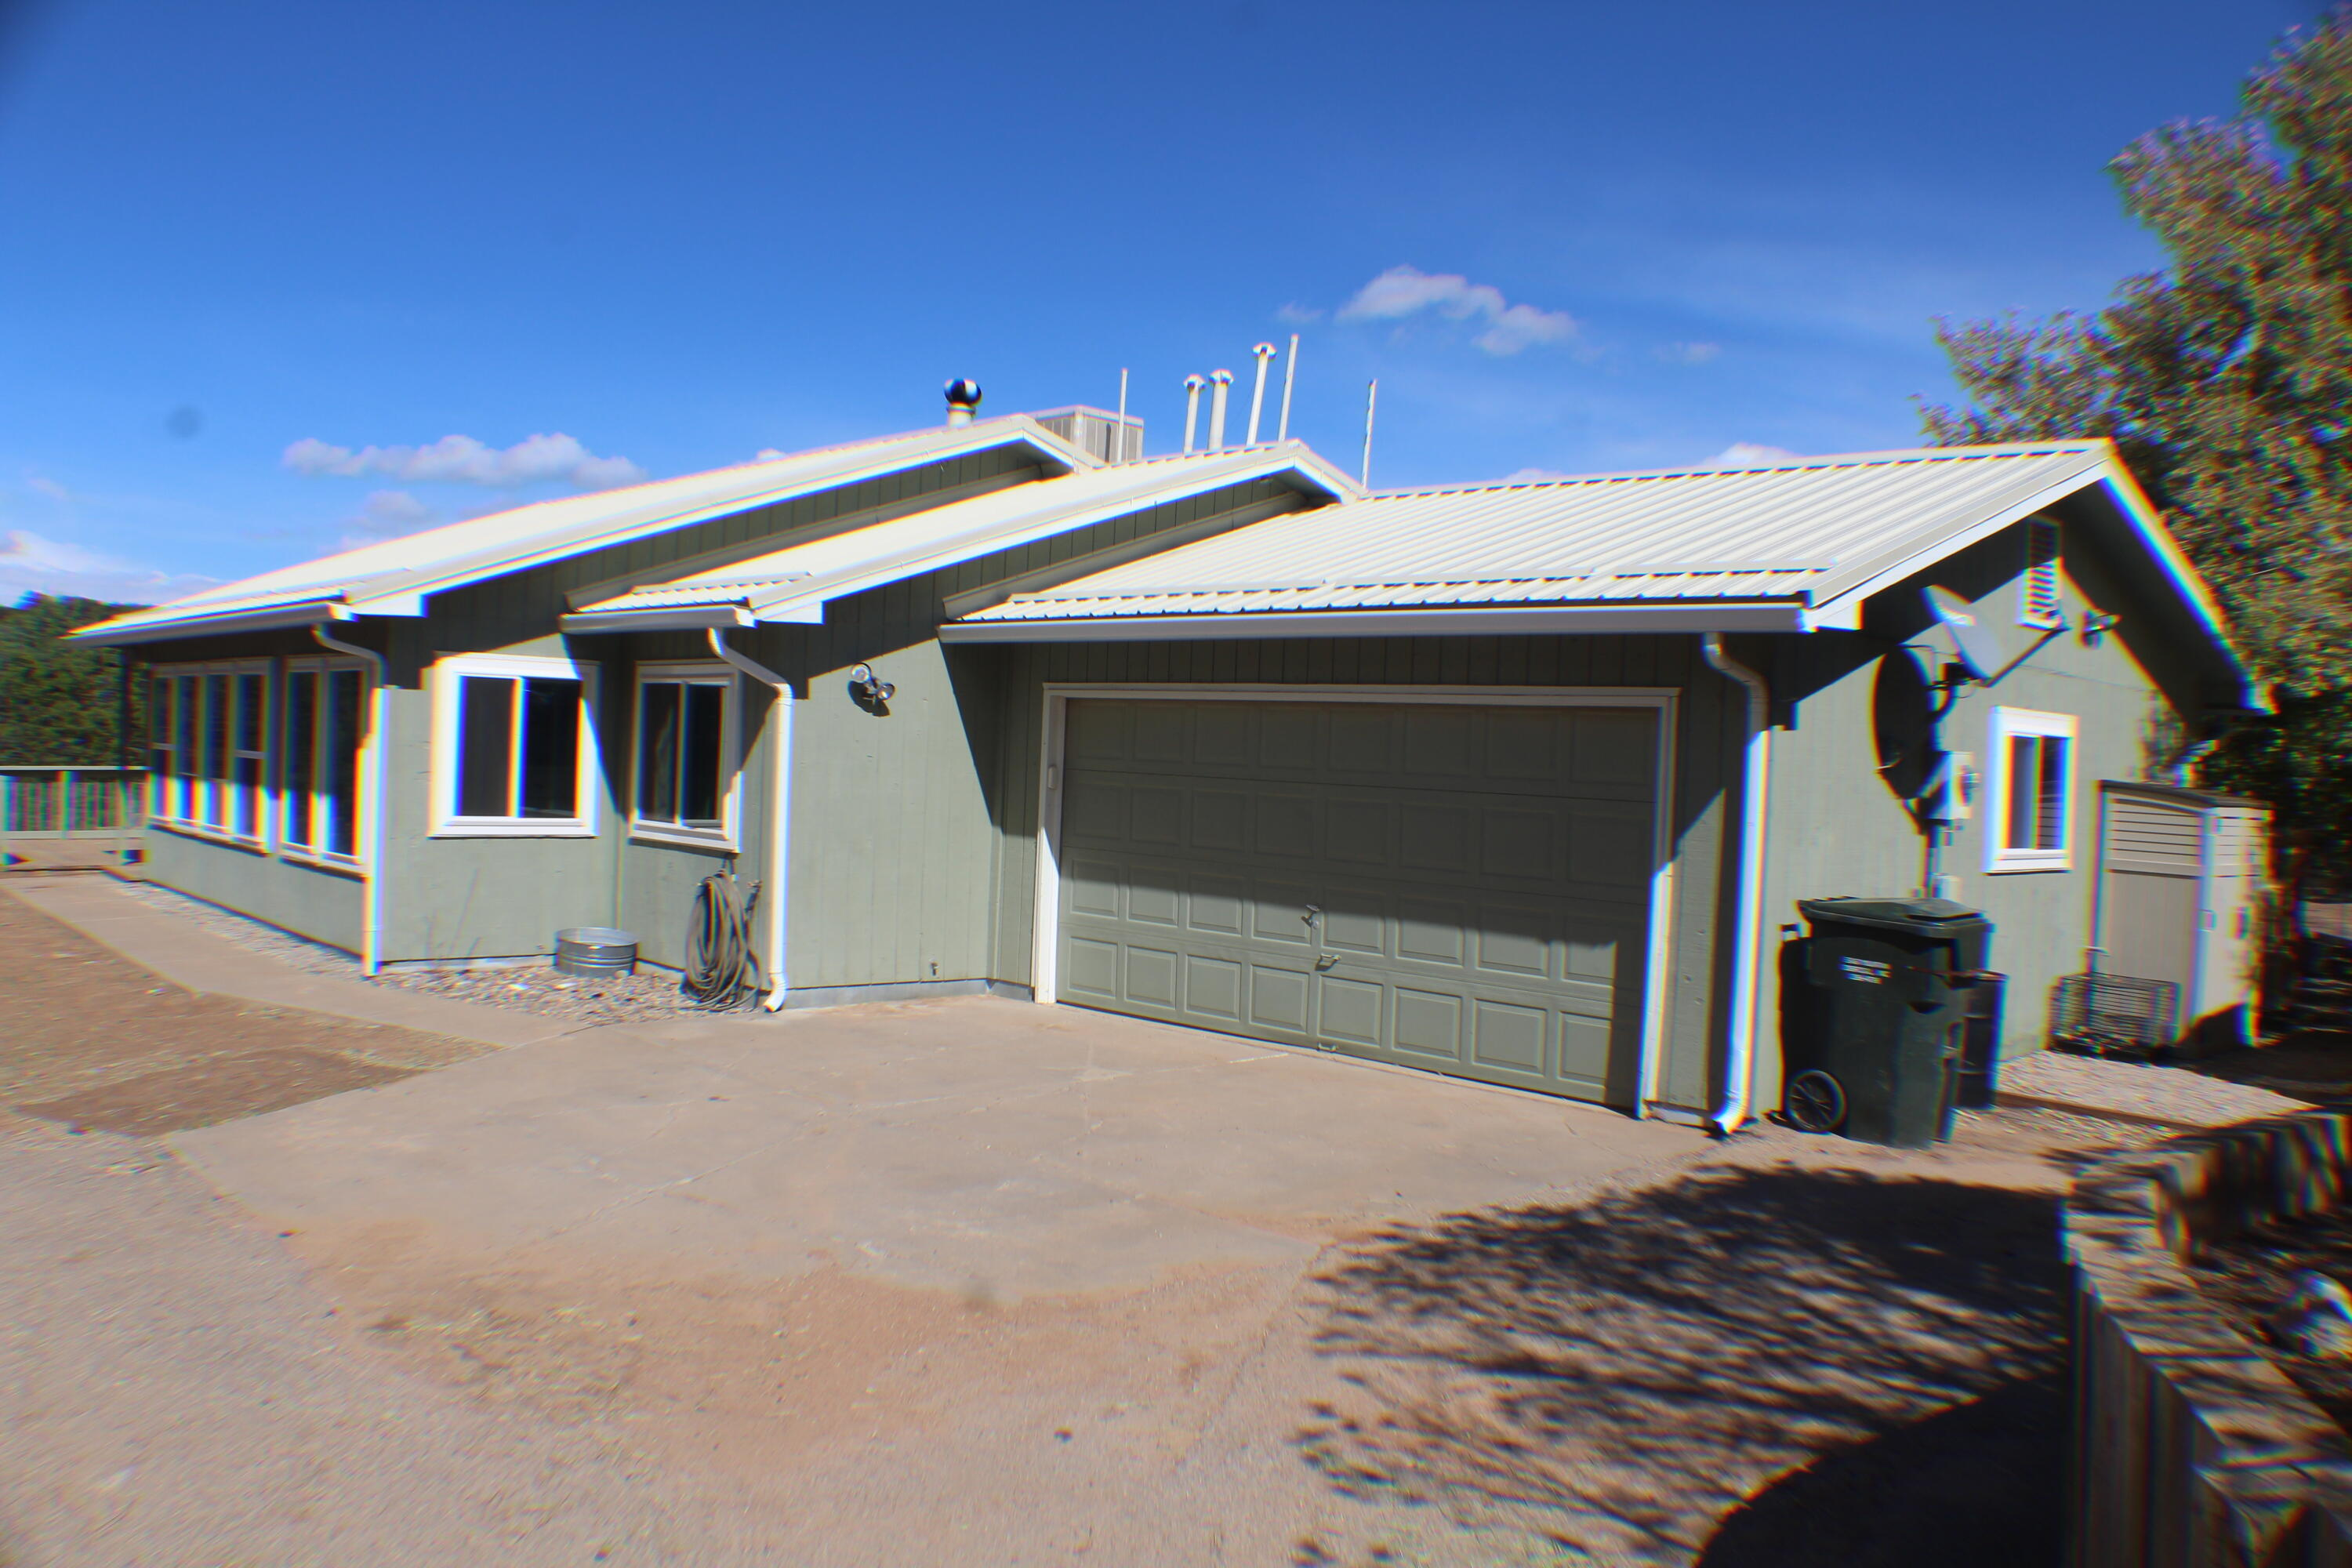 Fantastic home has new metal roof in 2019. New gutters and windows too. Recent paint throughout this home is ready for a new buyer. New range/oven and dishwasher. Upgraded lighting throughout. Fully fenced two acre lot has a detached garage that can hold 4 cars is 27x31. Pull down stairs for attic in detached garage. Gorgeous backyard has artificial grass and kids play area.Animal pens can stay if wanted.